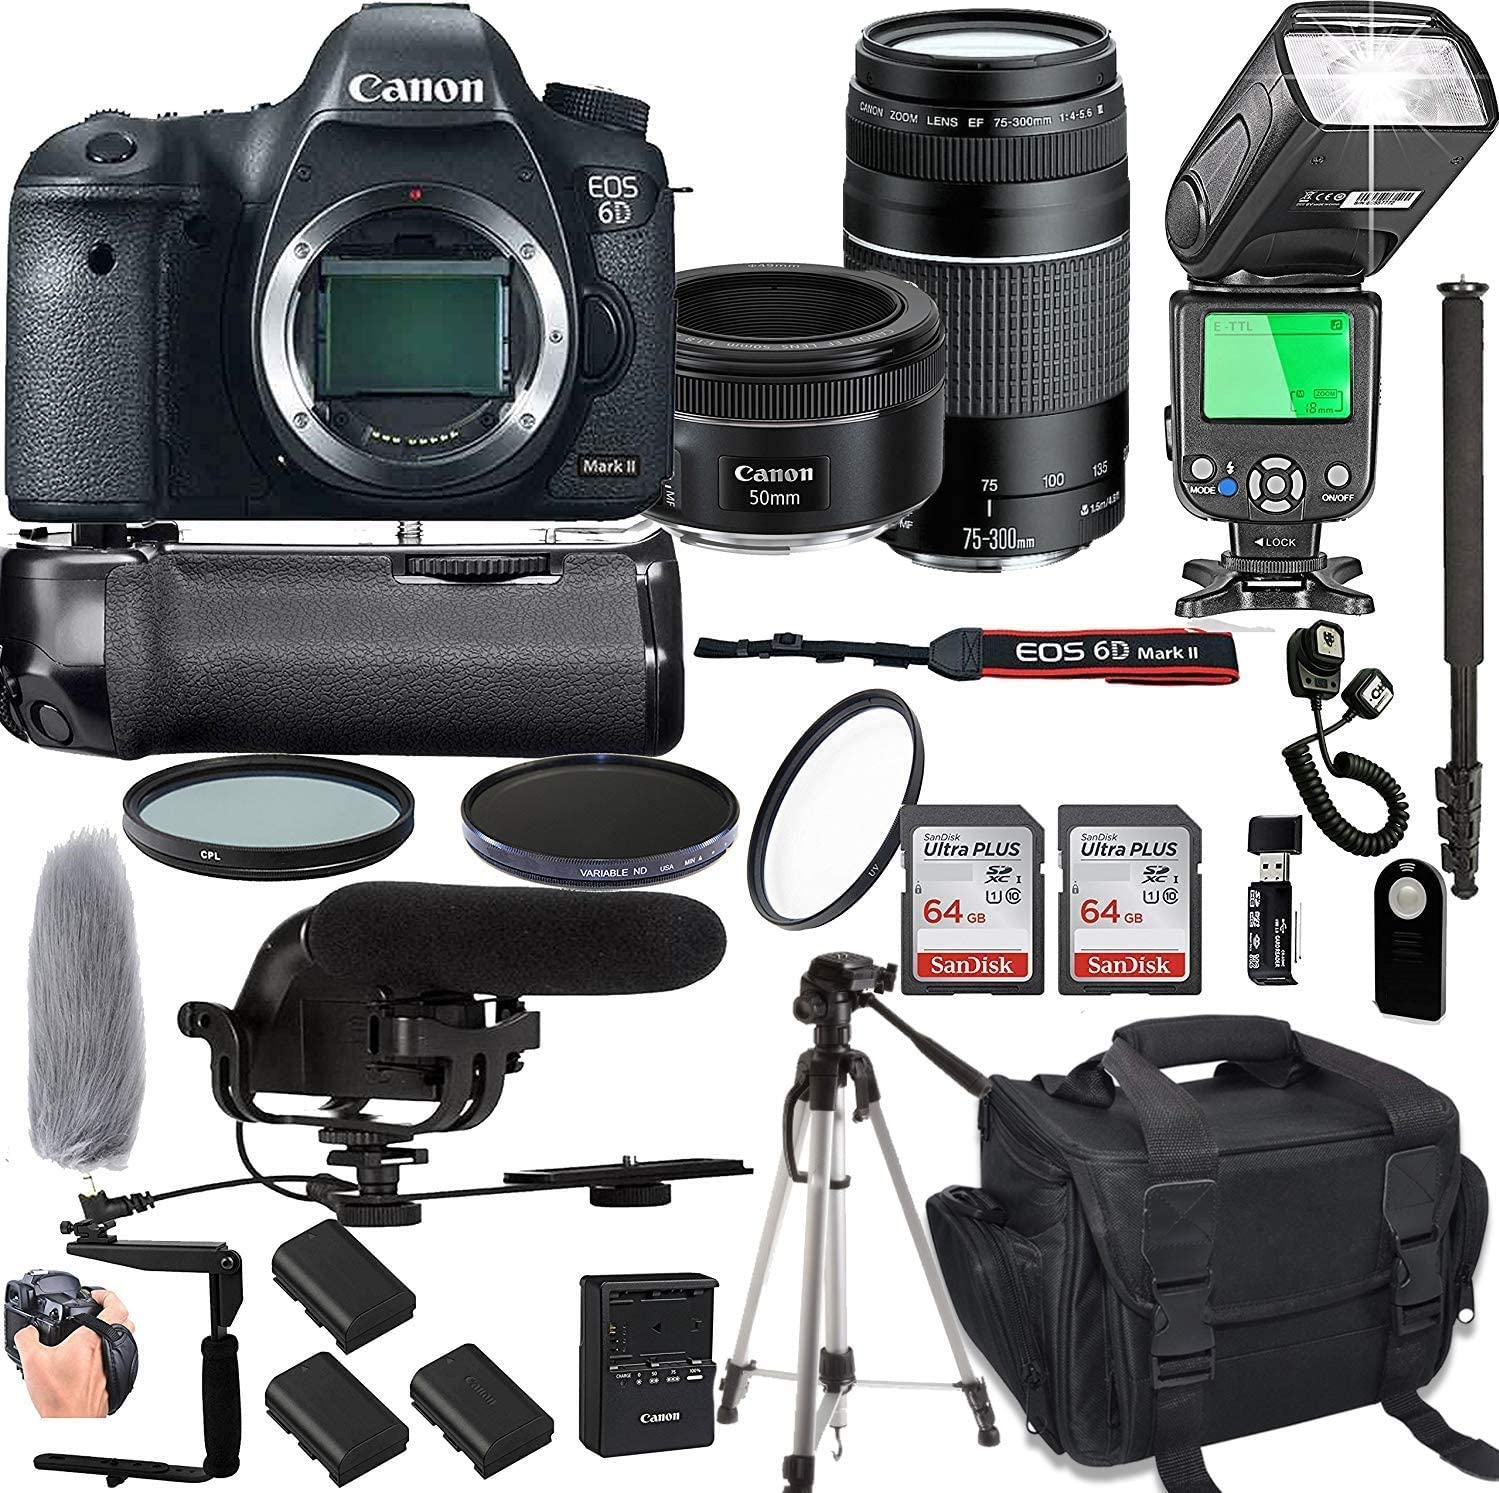 Canon Max 49% OFF EOS 6D Mark II with 50mm overseas f 1.8 + Lens Prime I STM 75-300mm